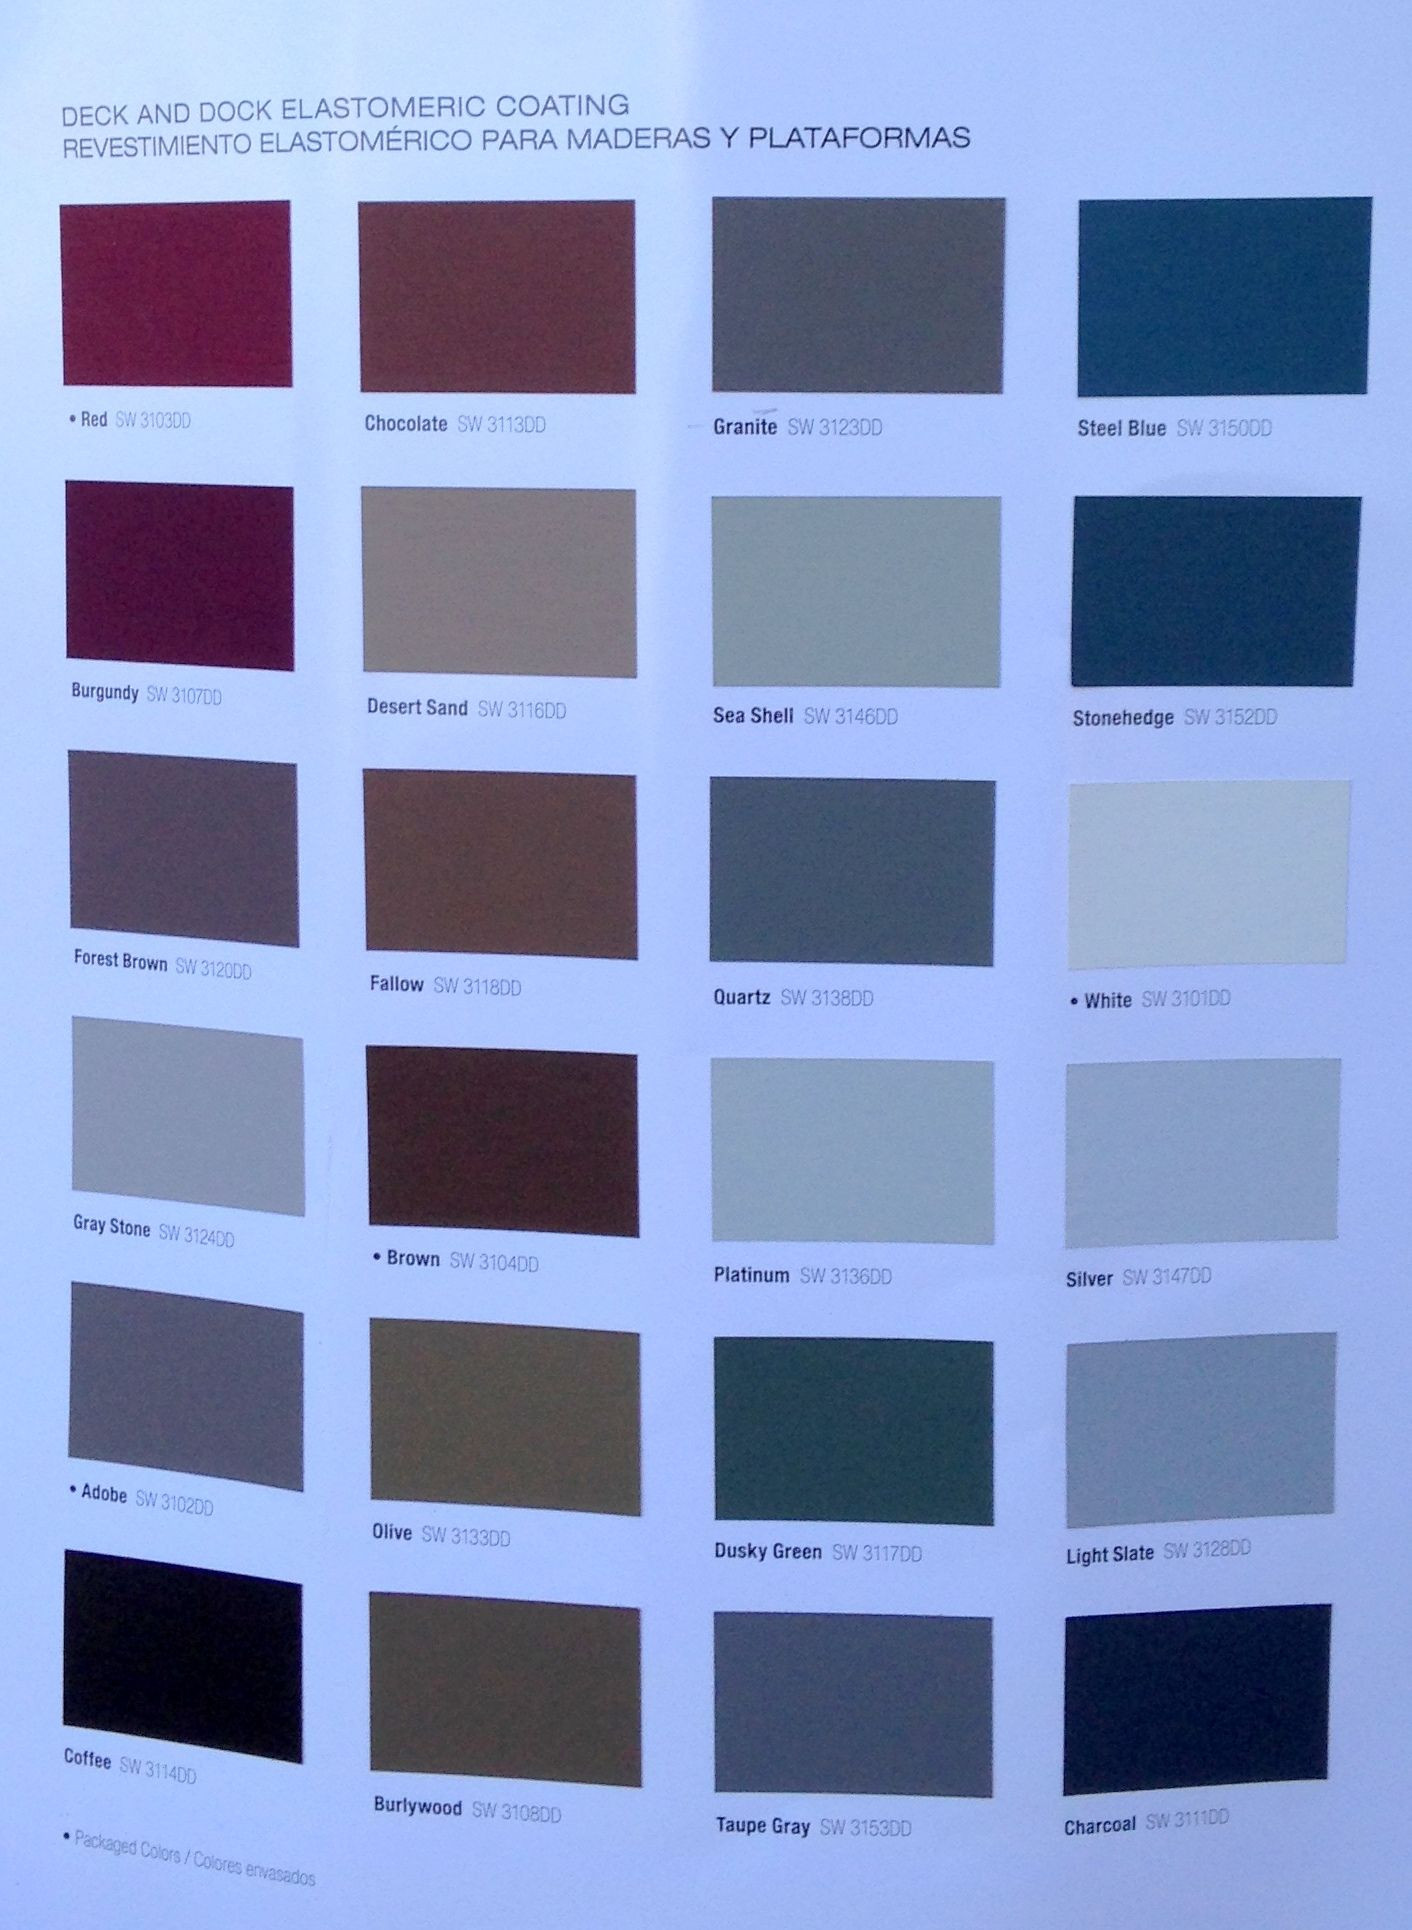 Cool Deck Paint Sherwin Williams  Sherwin Williams Superdeck Deck And Dock Reviews About